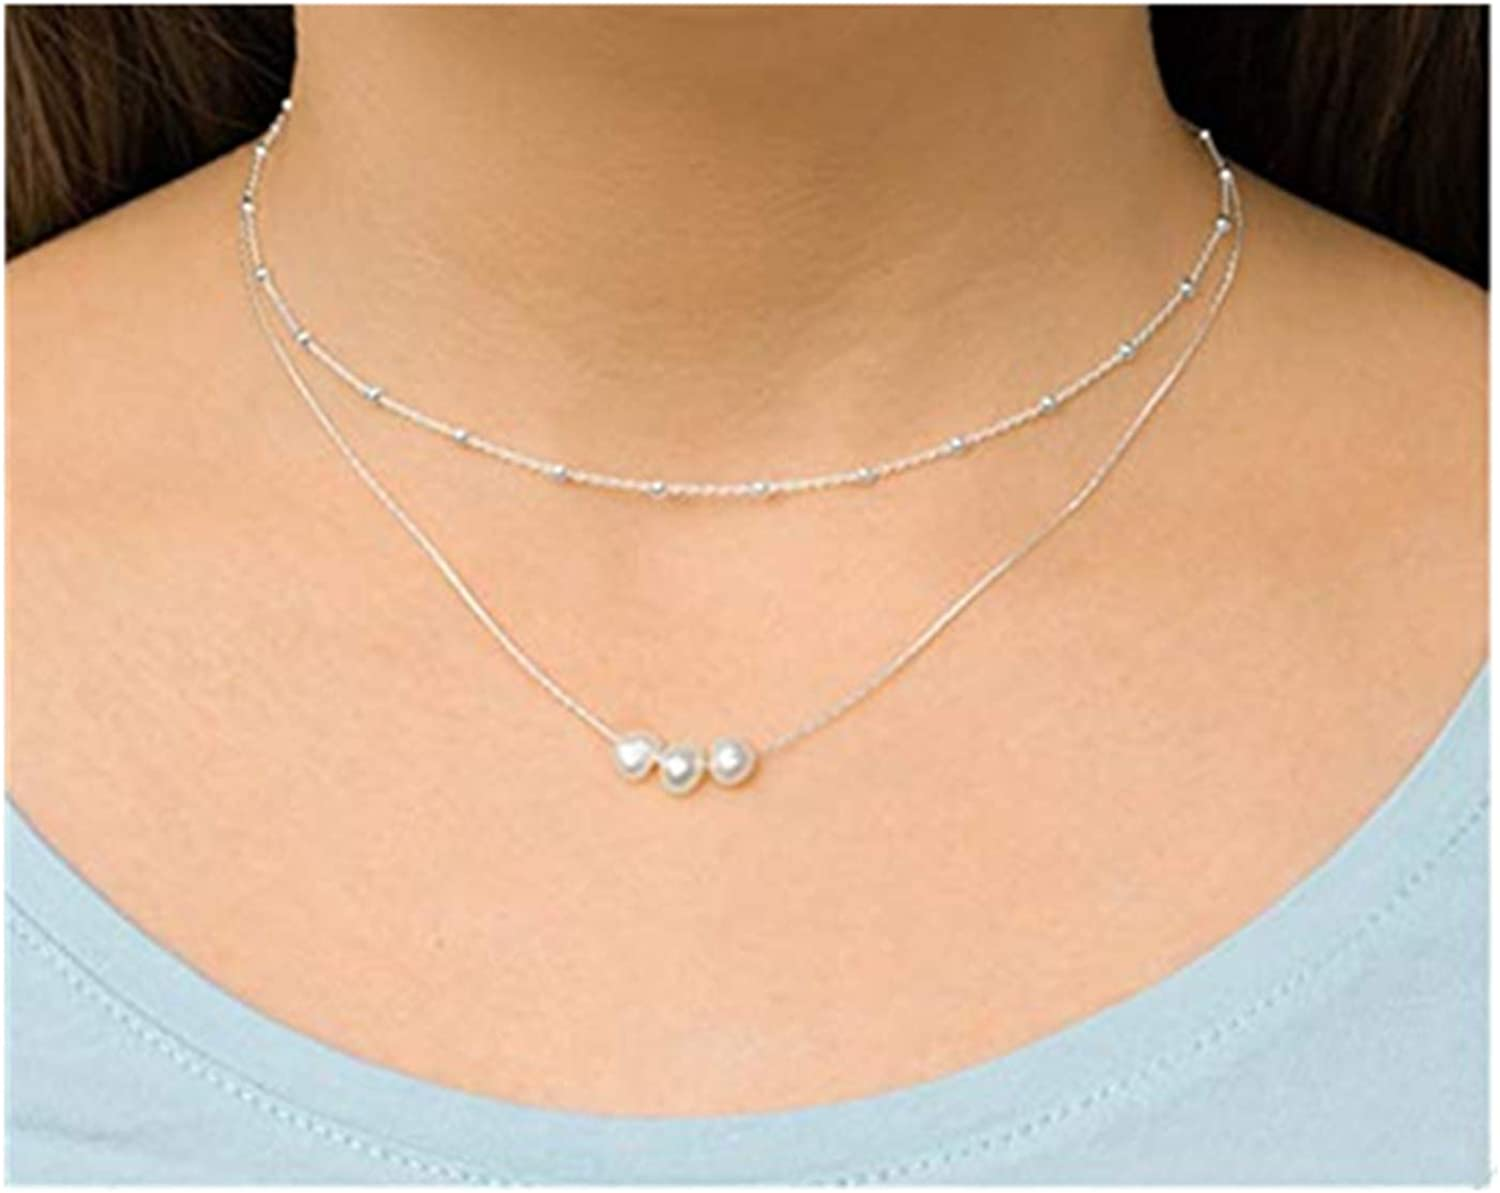 Colourful Silver Necklace Summer Delicate Dainty Fashion Necklace Layering Necklace Extra Long Jewelry Simple Every Day Jewelry